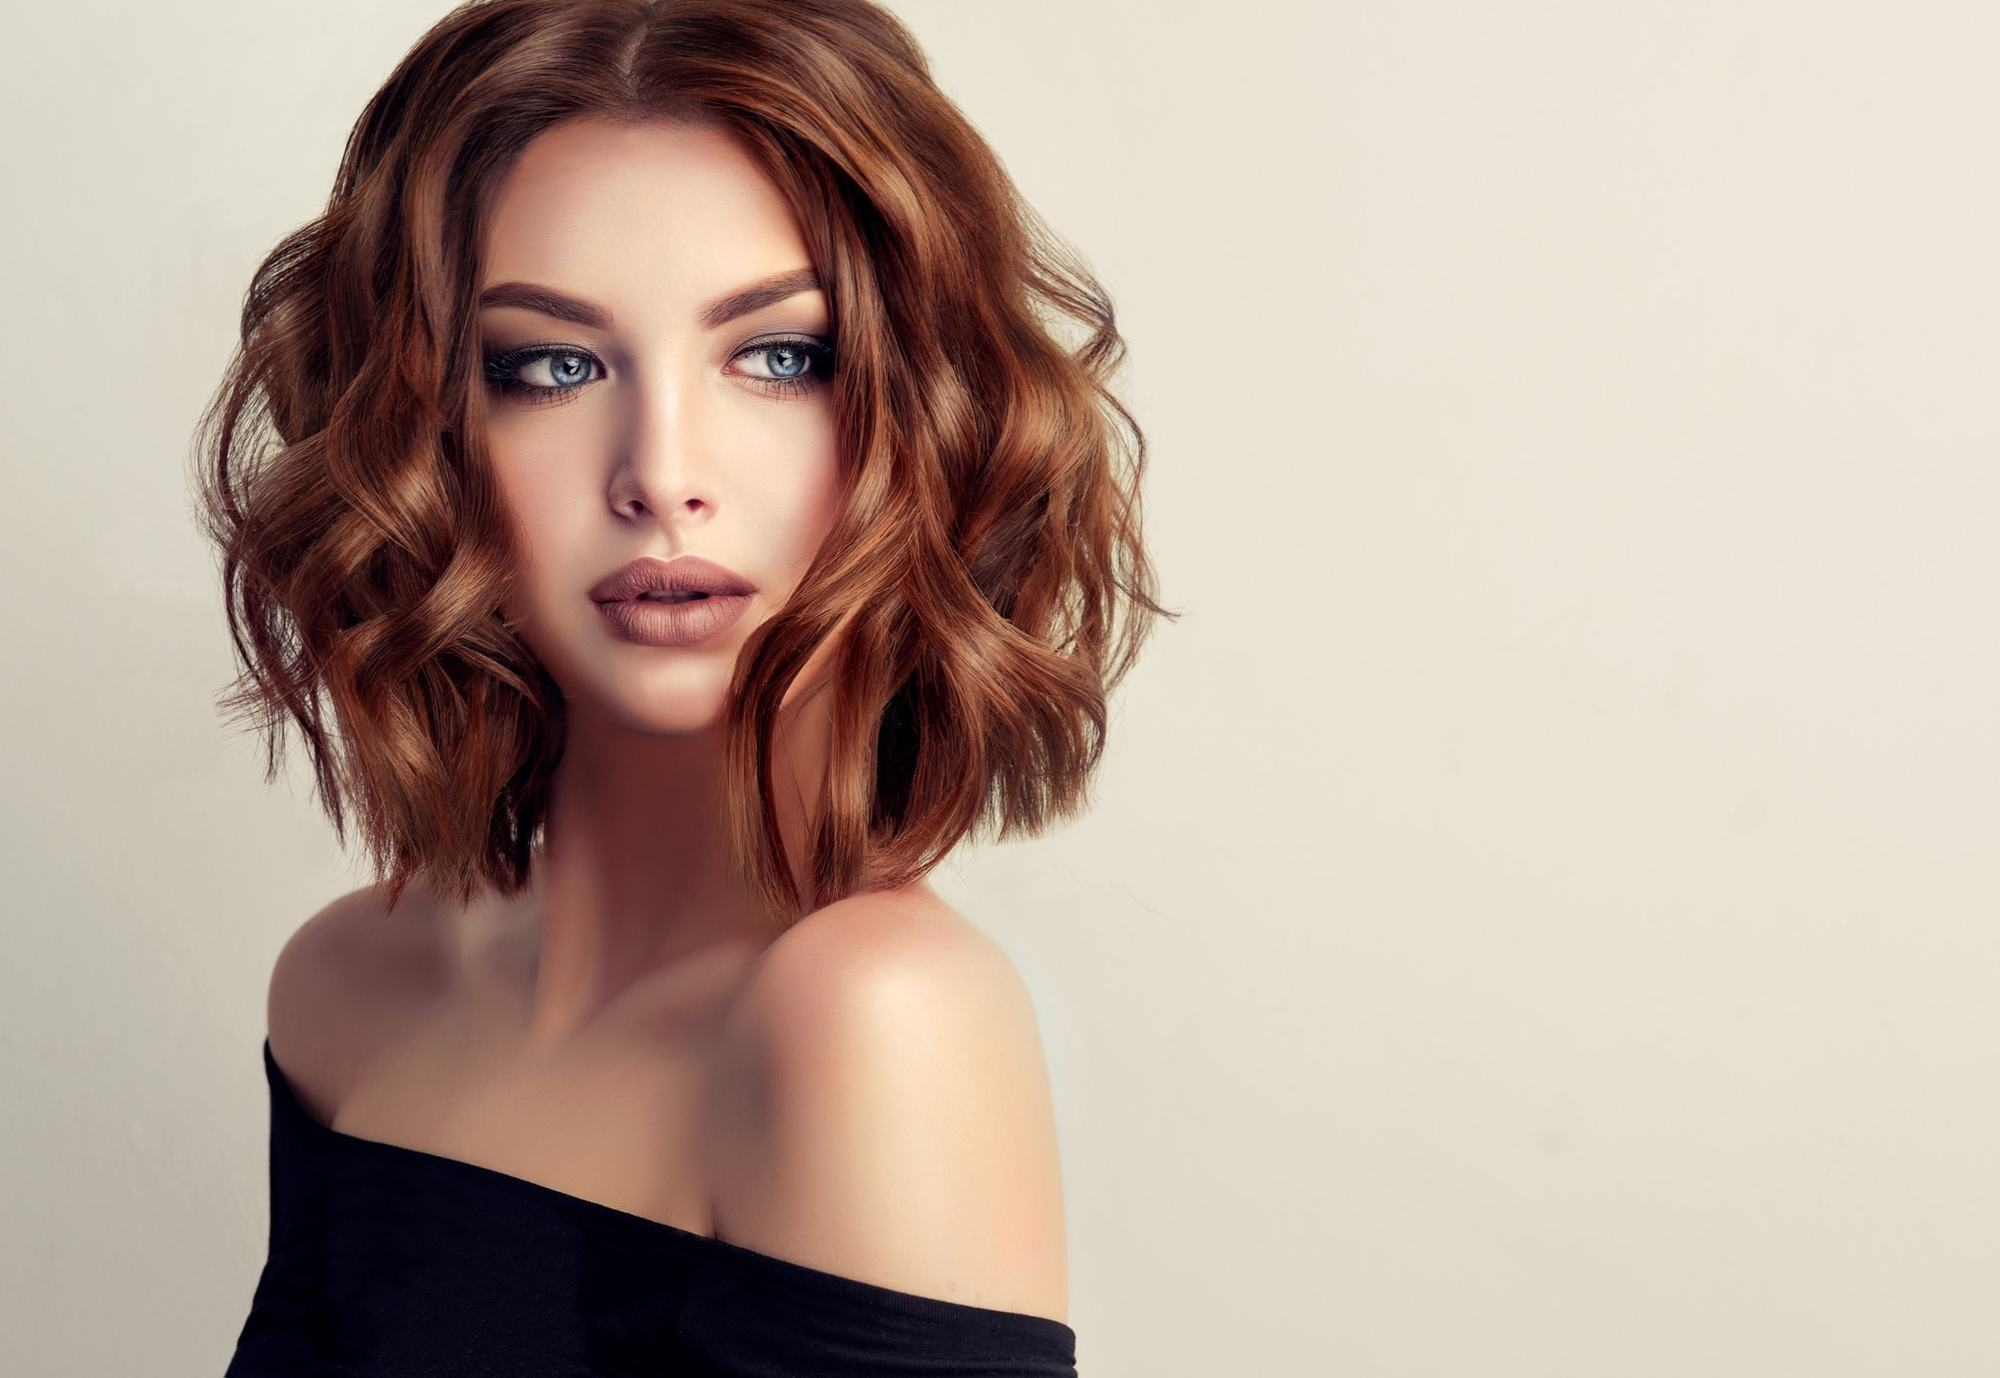 Short Wavy Hairstyles: 10 Sweet And Edgy Ideas To Check Out